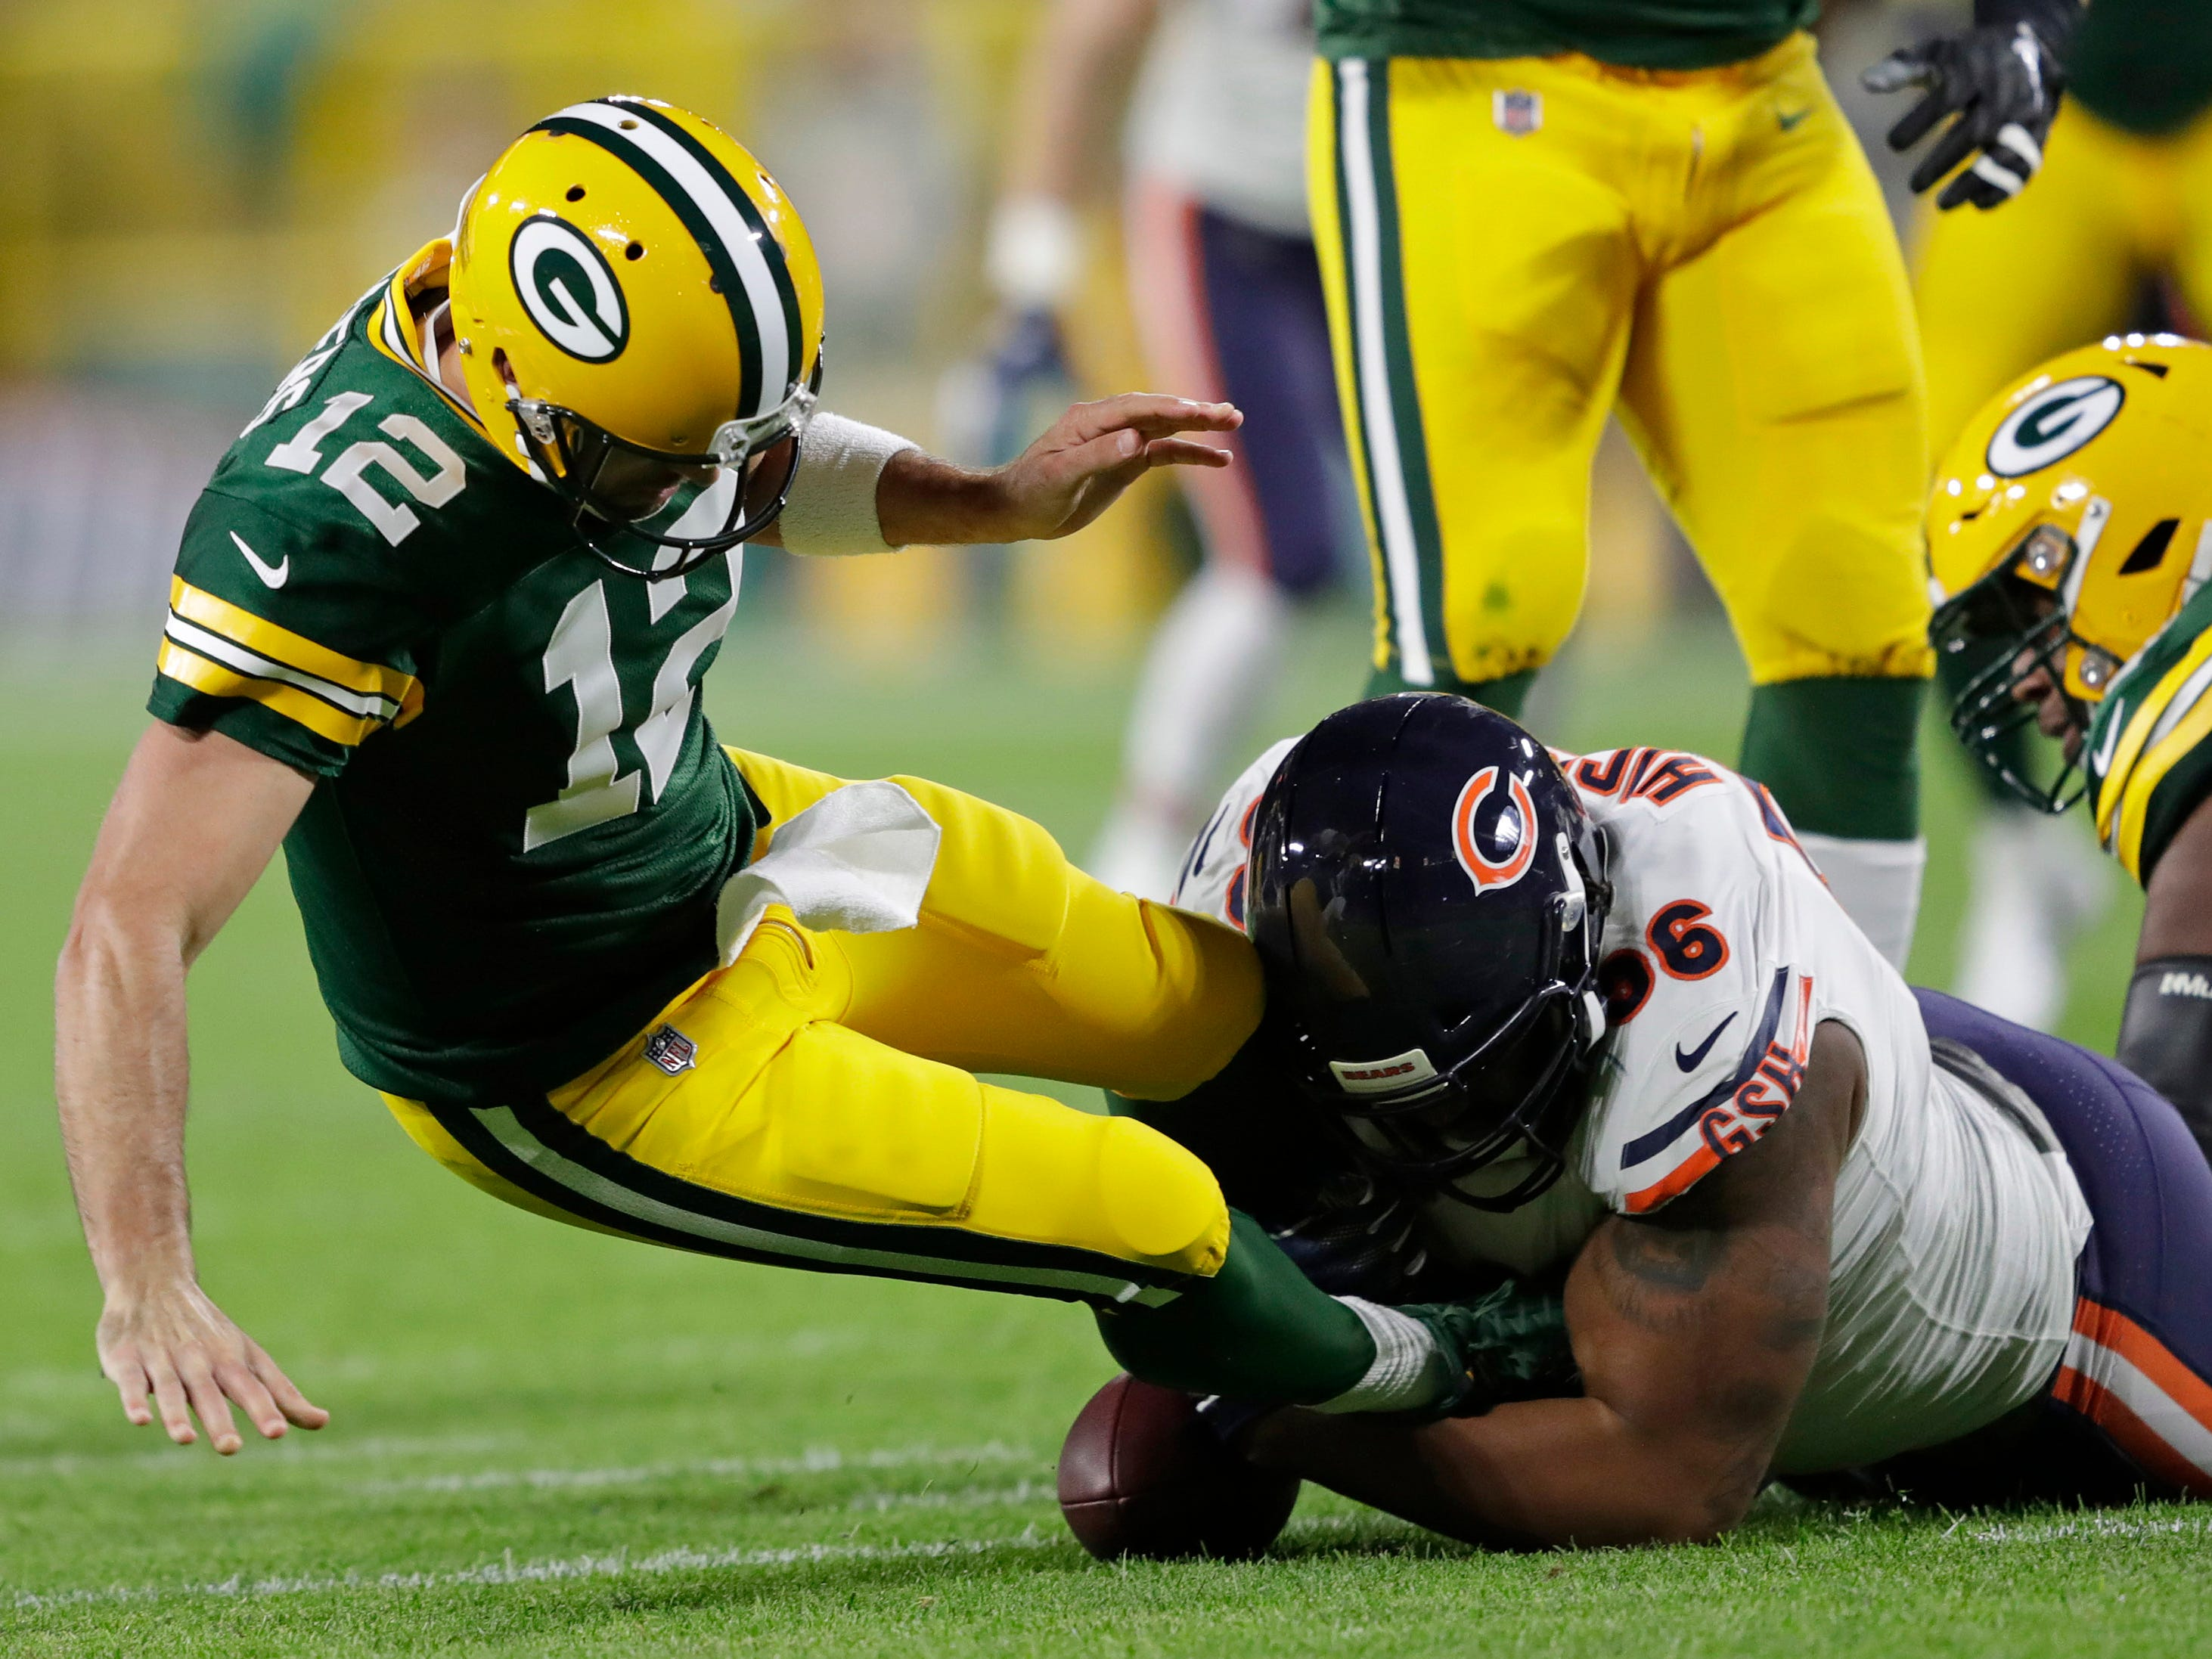 Sep 9, 2018; Green Bay, WI, USA;  Green Bay Packers quarterback Aaron Rodgers (12) is sacked by Chicago Bears defensive end Akiem Hicks (96) in the first quarter at Lambeau Field.  Mandatory Credit: Dan Powers/Appleton Post-Crescent via USA TODAY NETWORK